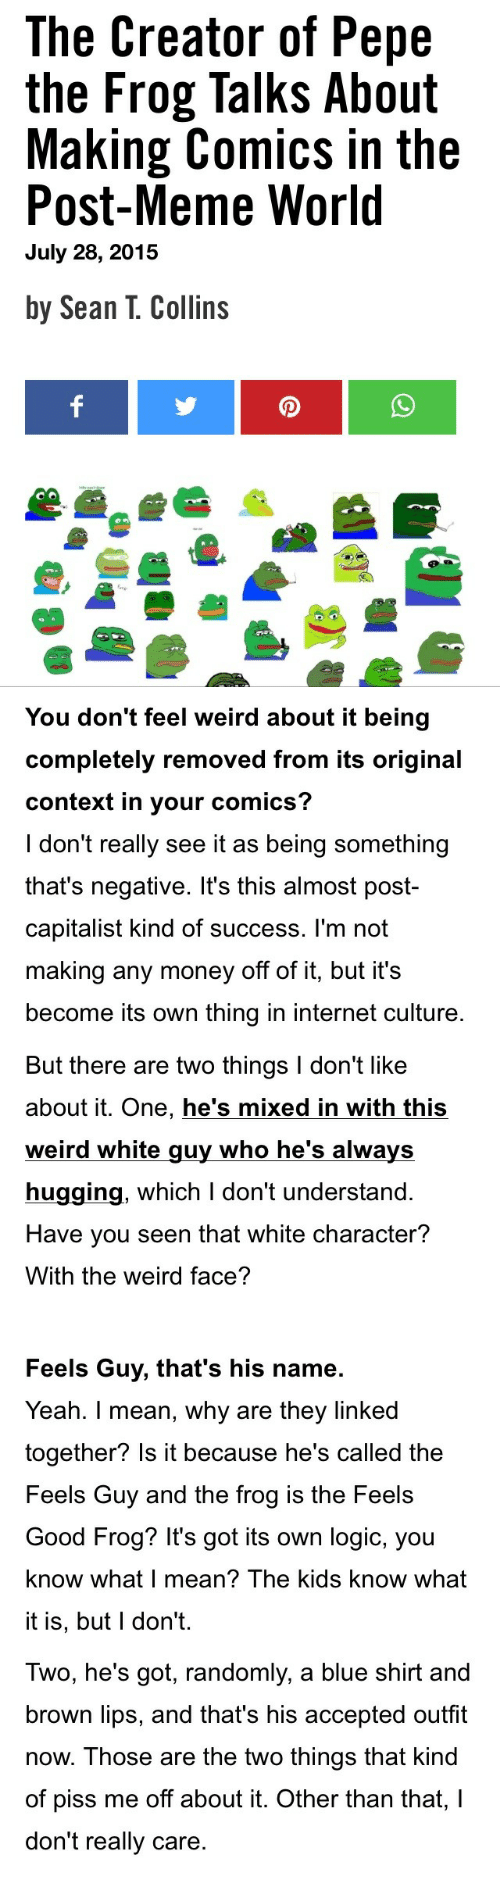 Internet, Logic, and Meme: The Creator of Pepe  the Frog Talks About  Making Comics in the  Post-Meme World  July 28, 2015  by Sean T. Collins   You don't feel weird about it being  completely removed from its original  context in your comics?  I don't really see it as being something  that's negative. It's this almost post-  capitalist kind of success. l'm not  making any money off of it, but it's  become its own thing in internet culture   But there are two things I don't like  about it. One, he's mixed in with this  weird white guy who he's always  hugging, which I don't understand.  Have you seen that white character?  With the weird face?  Feels Guy, that's his name  Yeah. I mean, why are they linked  together? Is it because he's called the  Feels Guy and the frog is the Feels  Good Frog? It's got its own logic, you  know what I mean? The kids know what  it is, but l don't.   Iwo, he's got, randomly, a blue shirt and  brown lips, and that's his accepted outfit  now. Those are the two things that kind  of piss me off about it. Other than that,I  don't really care